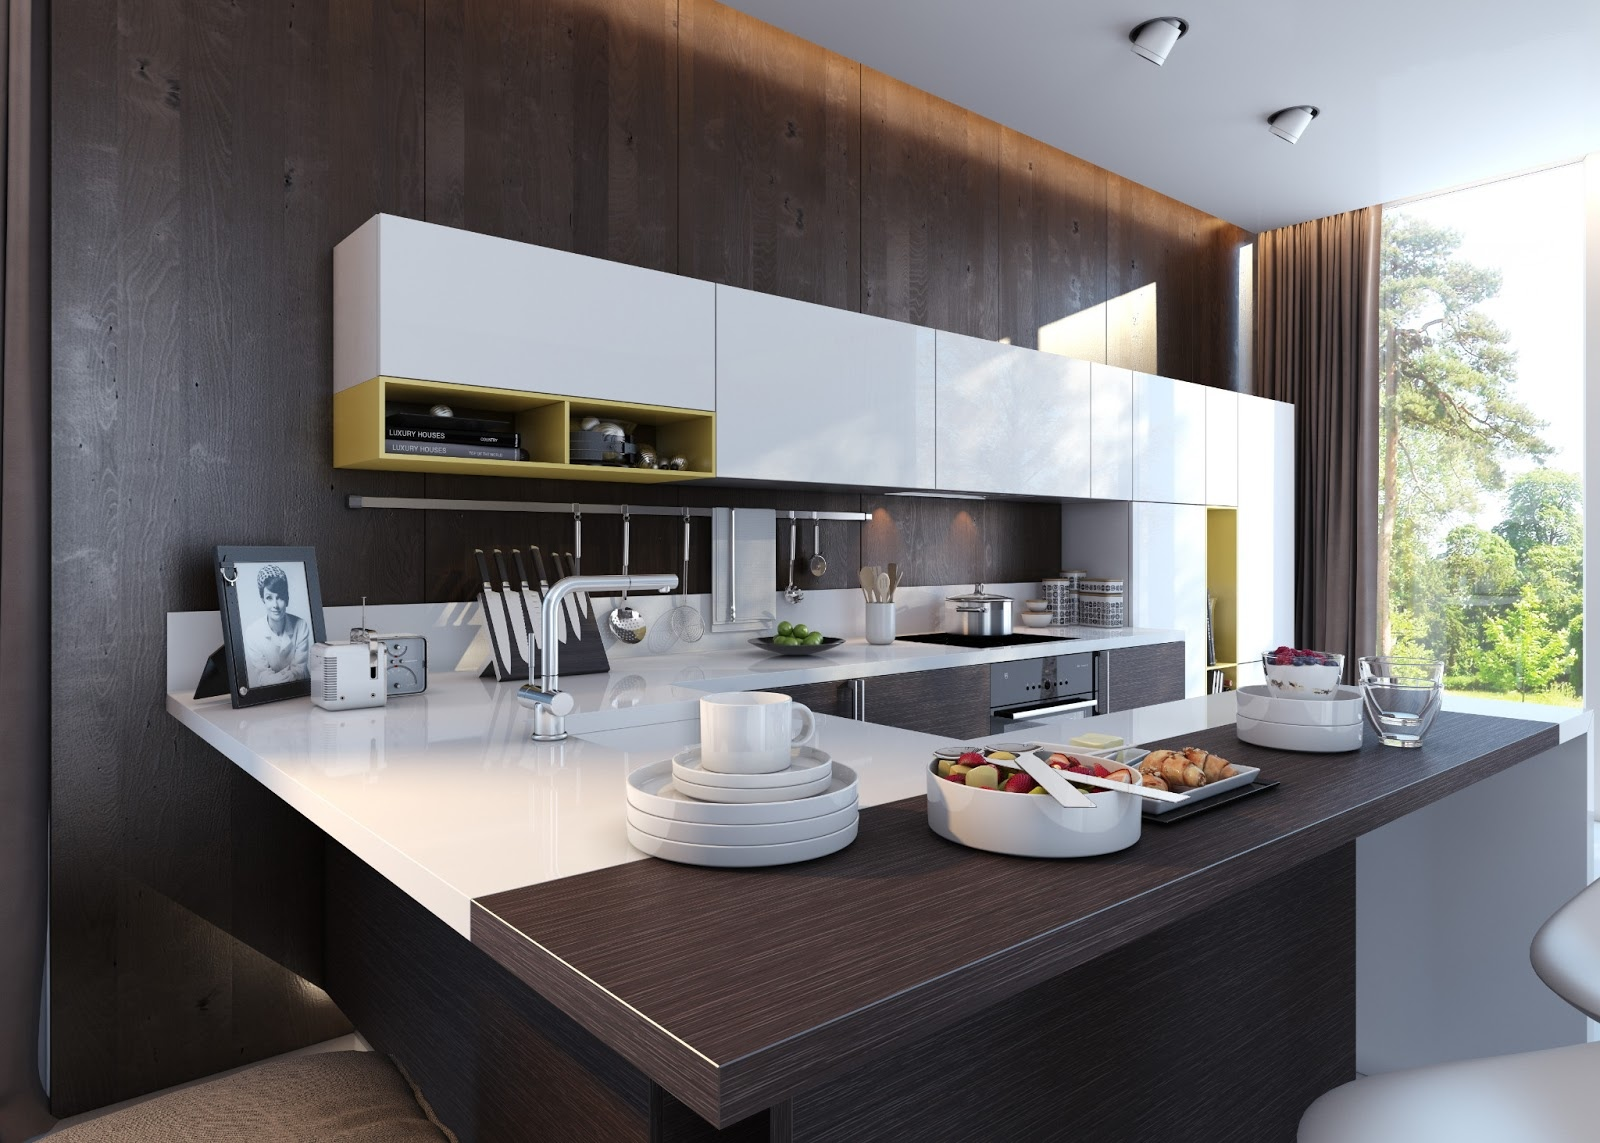 contemporary kitchen interior with mix of white and black wooden